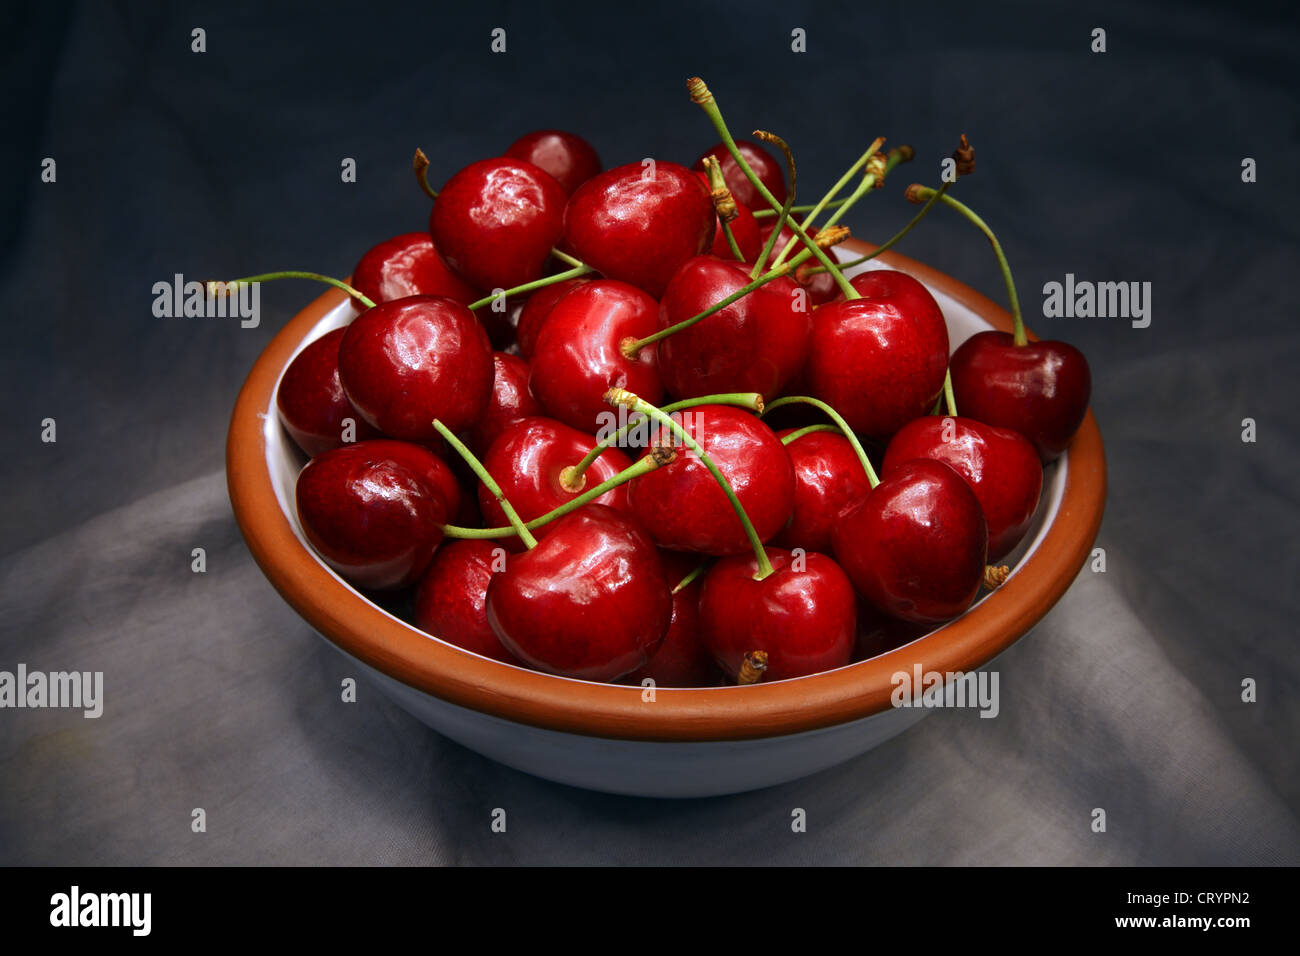 Bowl of red cherries. - Stock Image